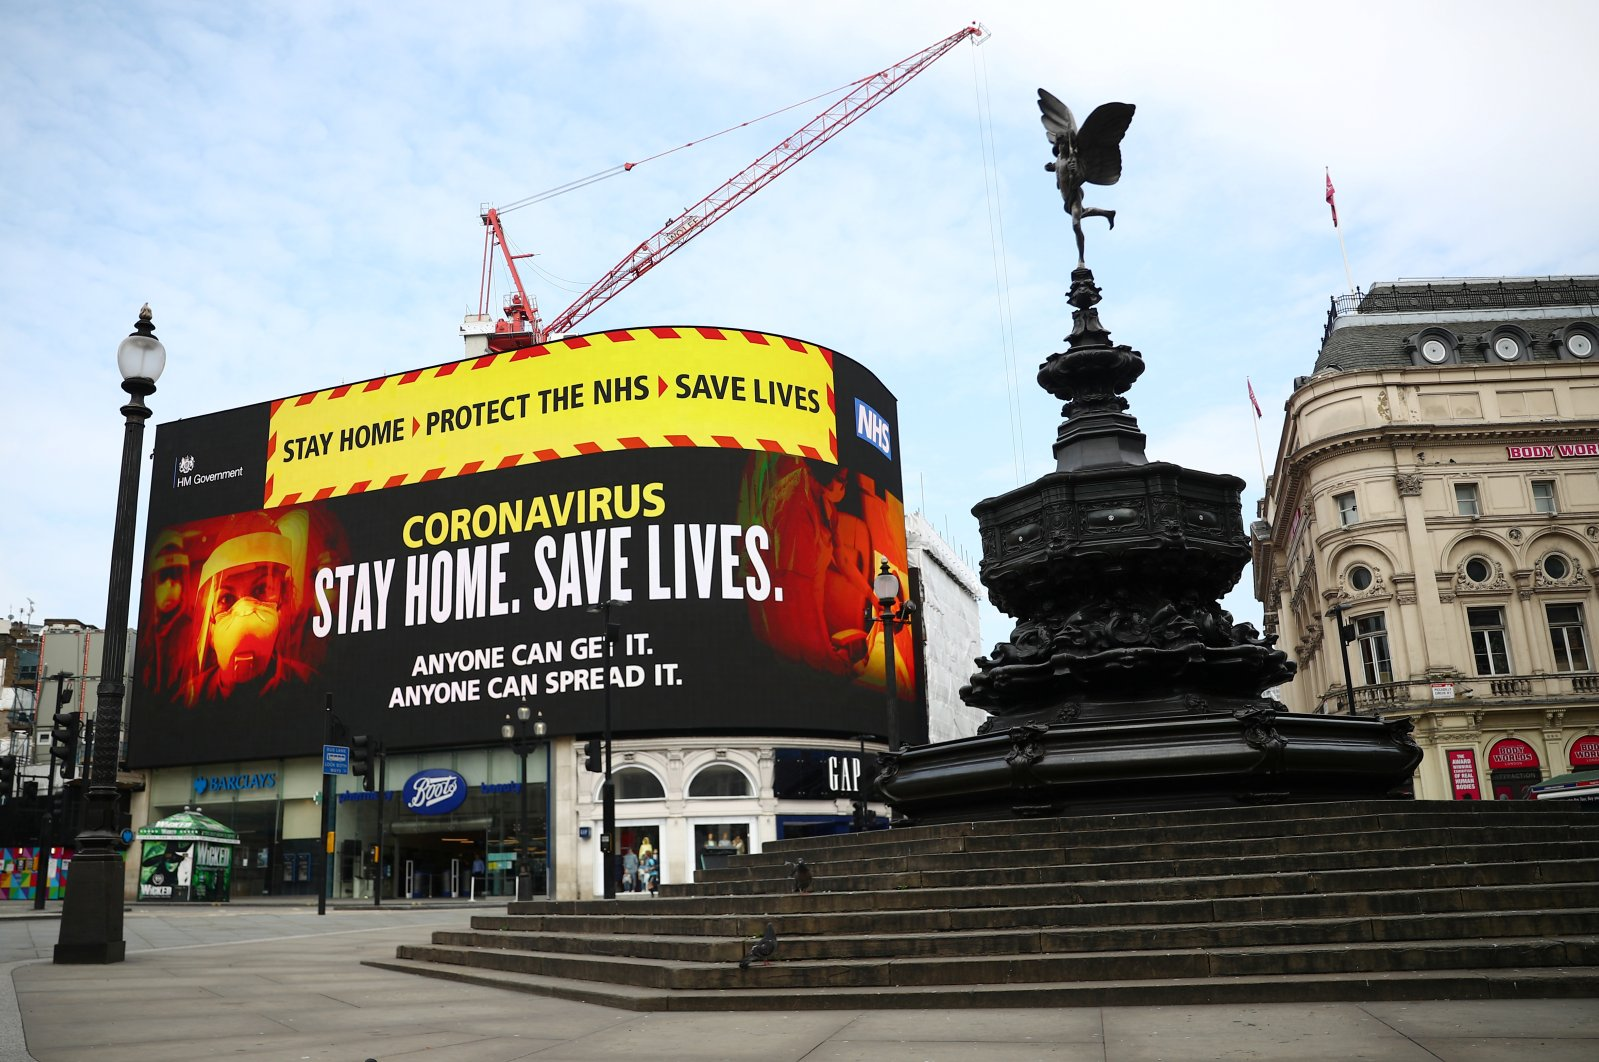 A UK government public health campaign is displayed in Piccadilly Circus, as the spread of the coronavirus disease (COVID-19) continues, London, Britain, April 8, 2020. (Reuters Photo)